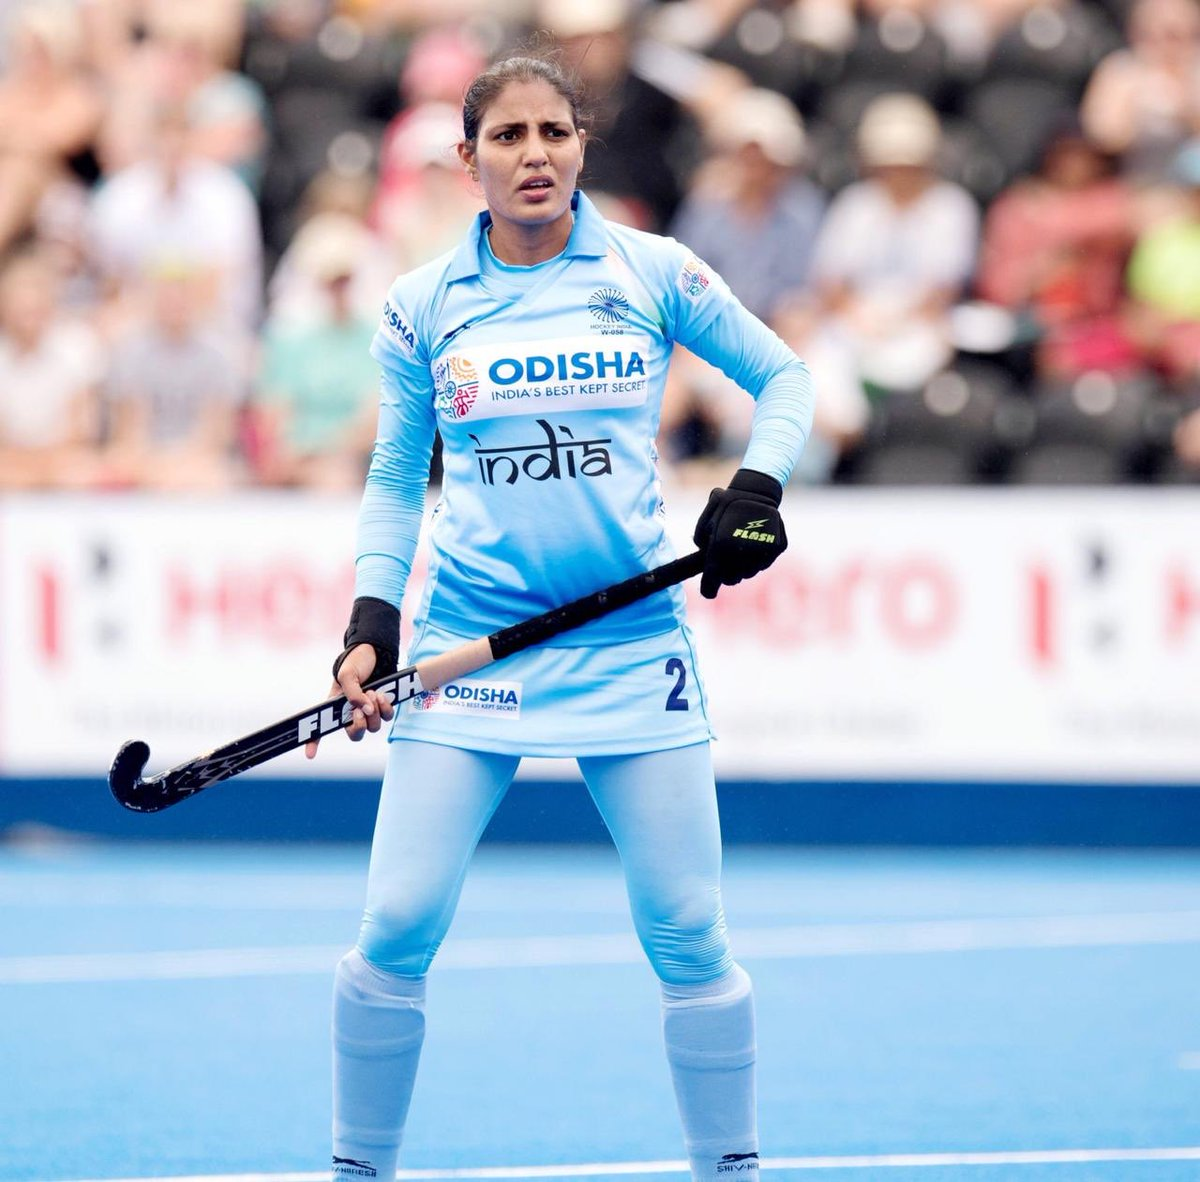 #KnowYourChampionIndian women's #hockey's star drag-flicker #GurjitKaur has had a long journey to the top. Her father enrolled her in an academy in Kairon & regularly travelled 150 kms to see her practice. She's India's leading scorer with 7 goals at ongoing FIH Series finals.🏑